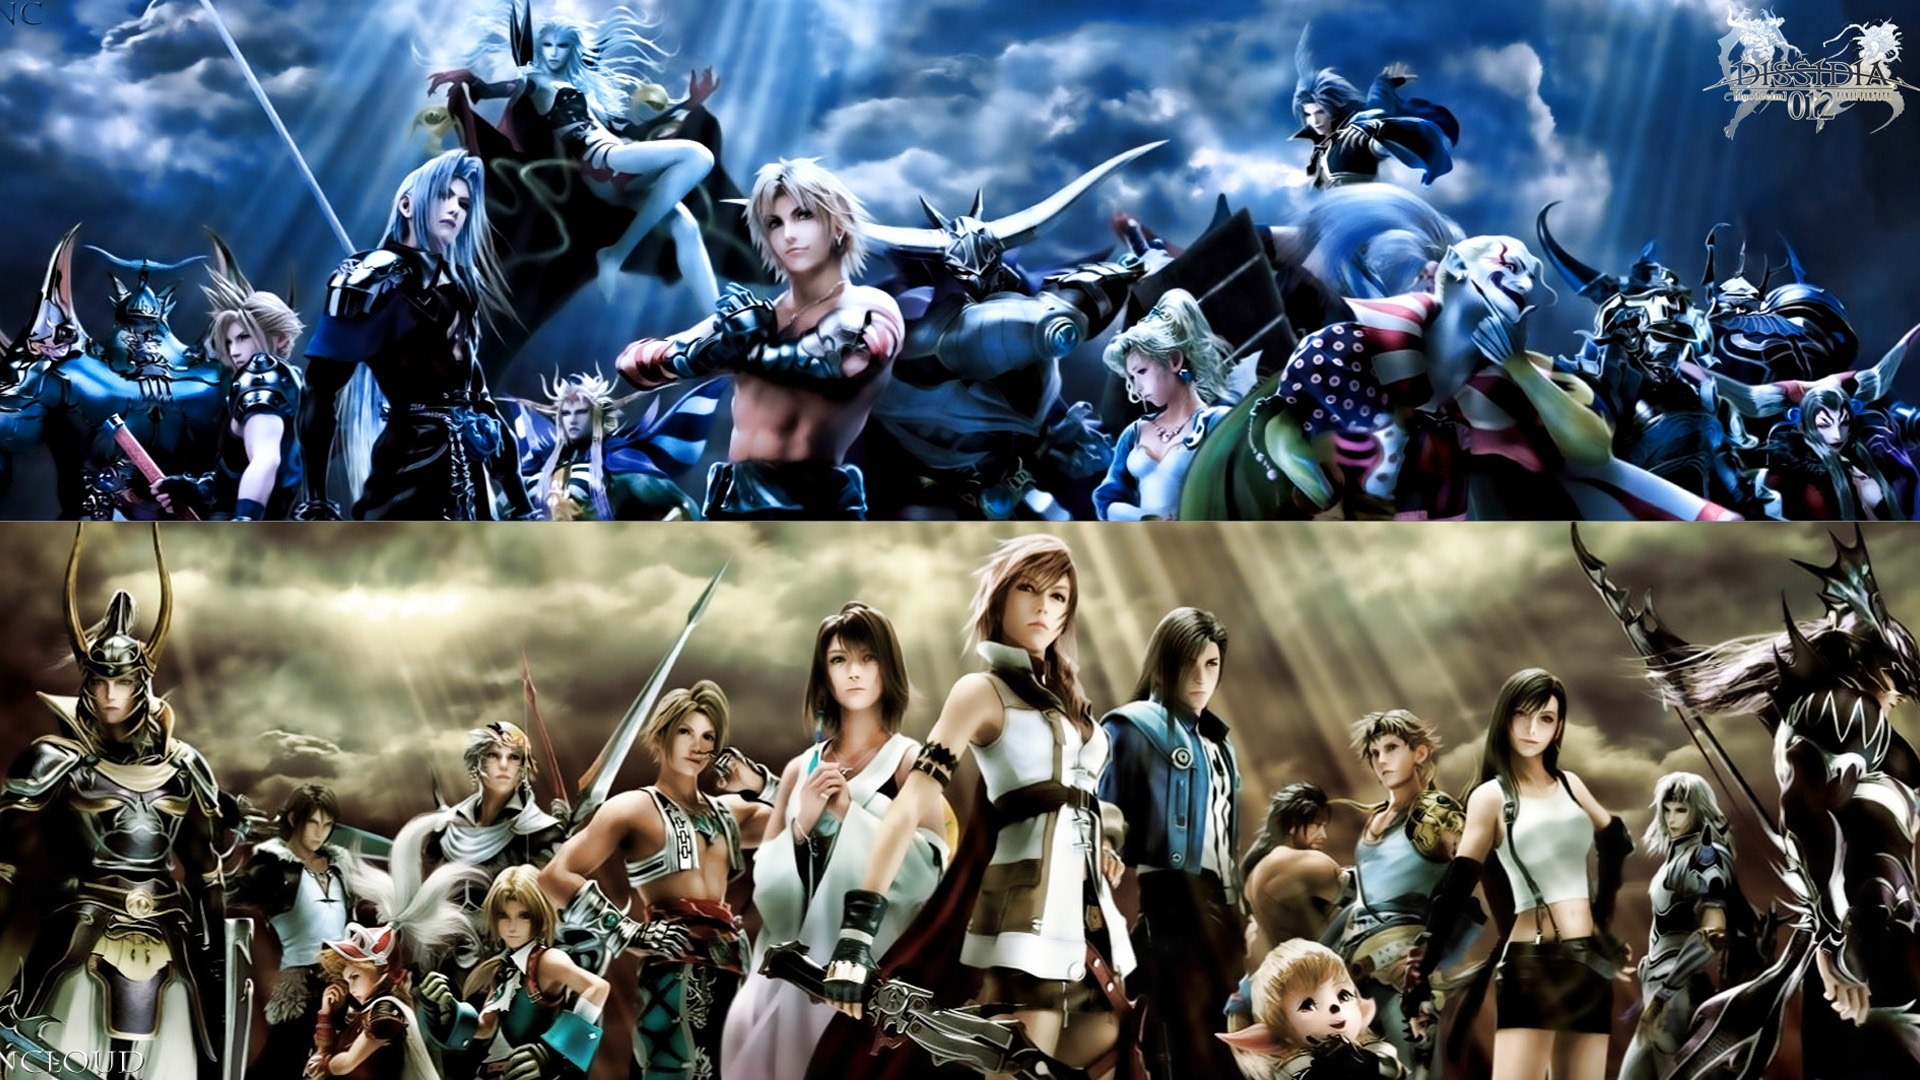 Wallpaperwiki Photos HD Final Fantasy Wallpapers PIC WPE008723